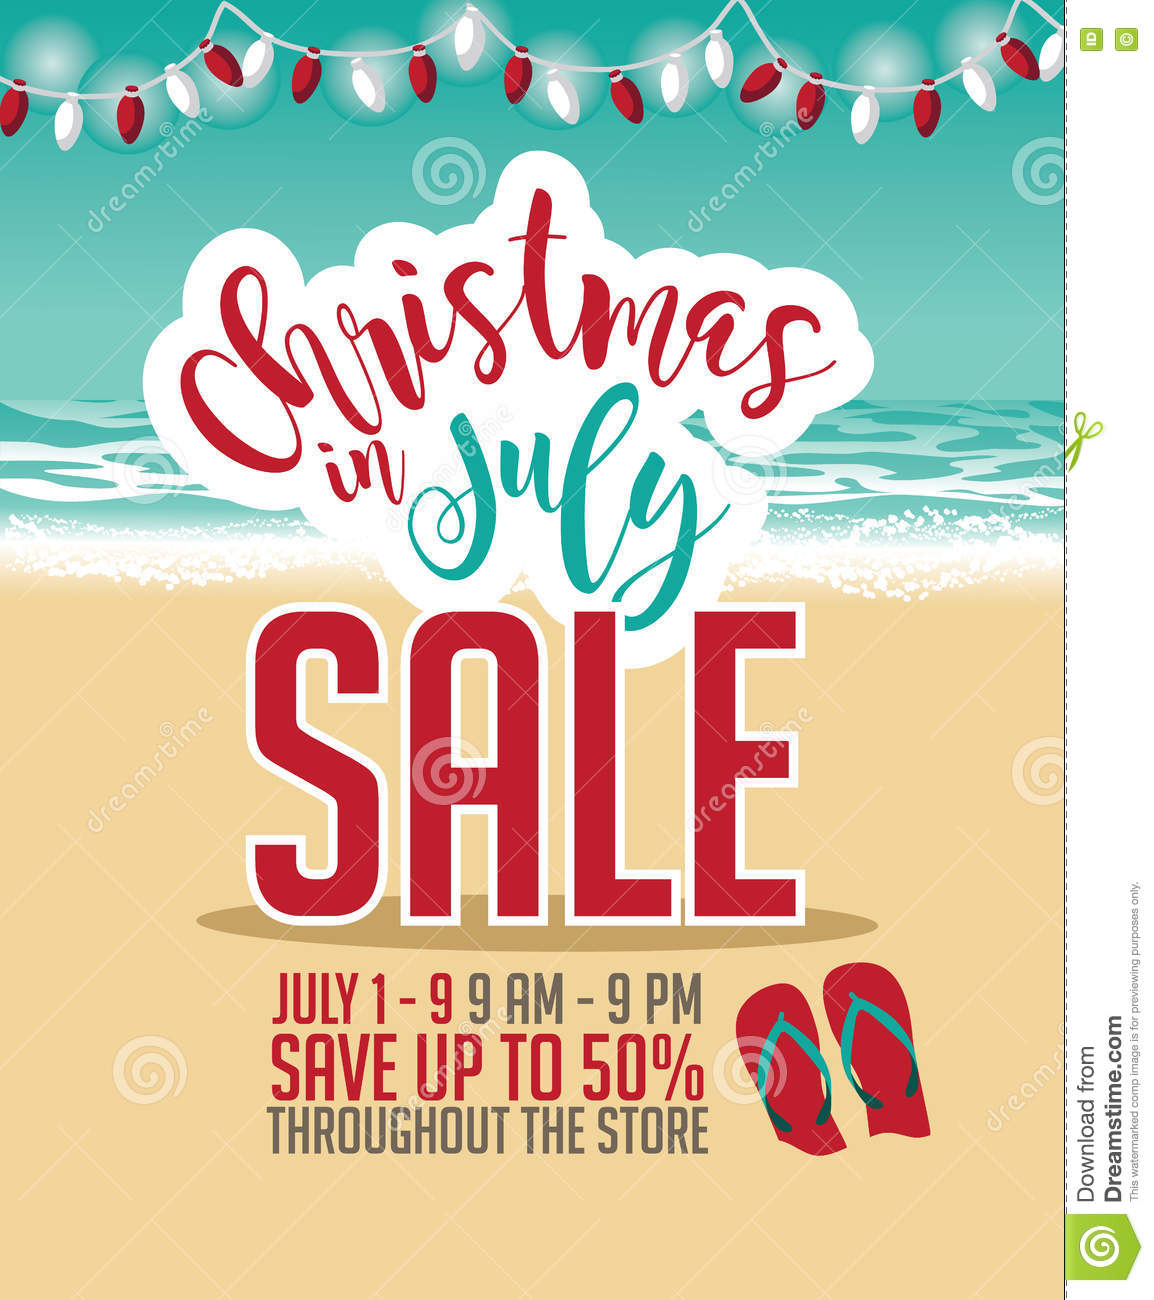 Christmas in July Sale marketing template.